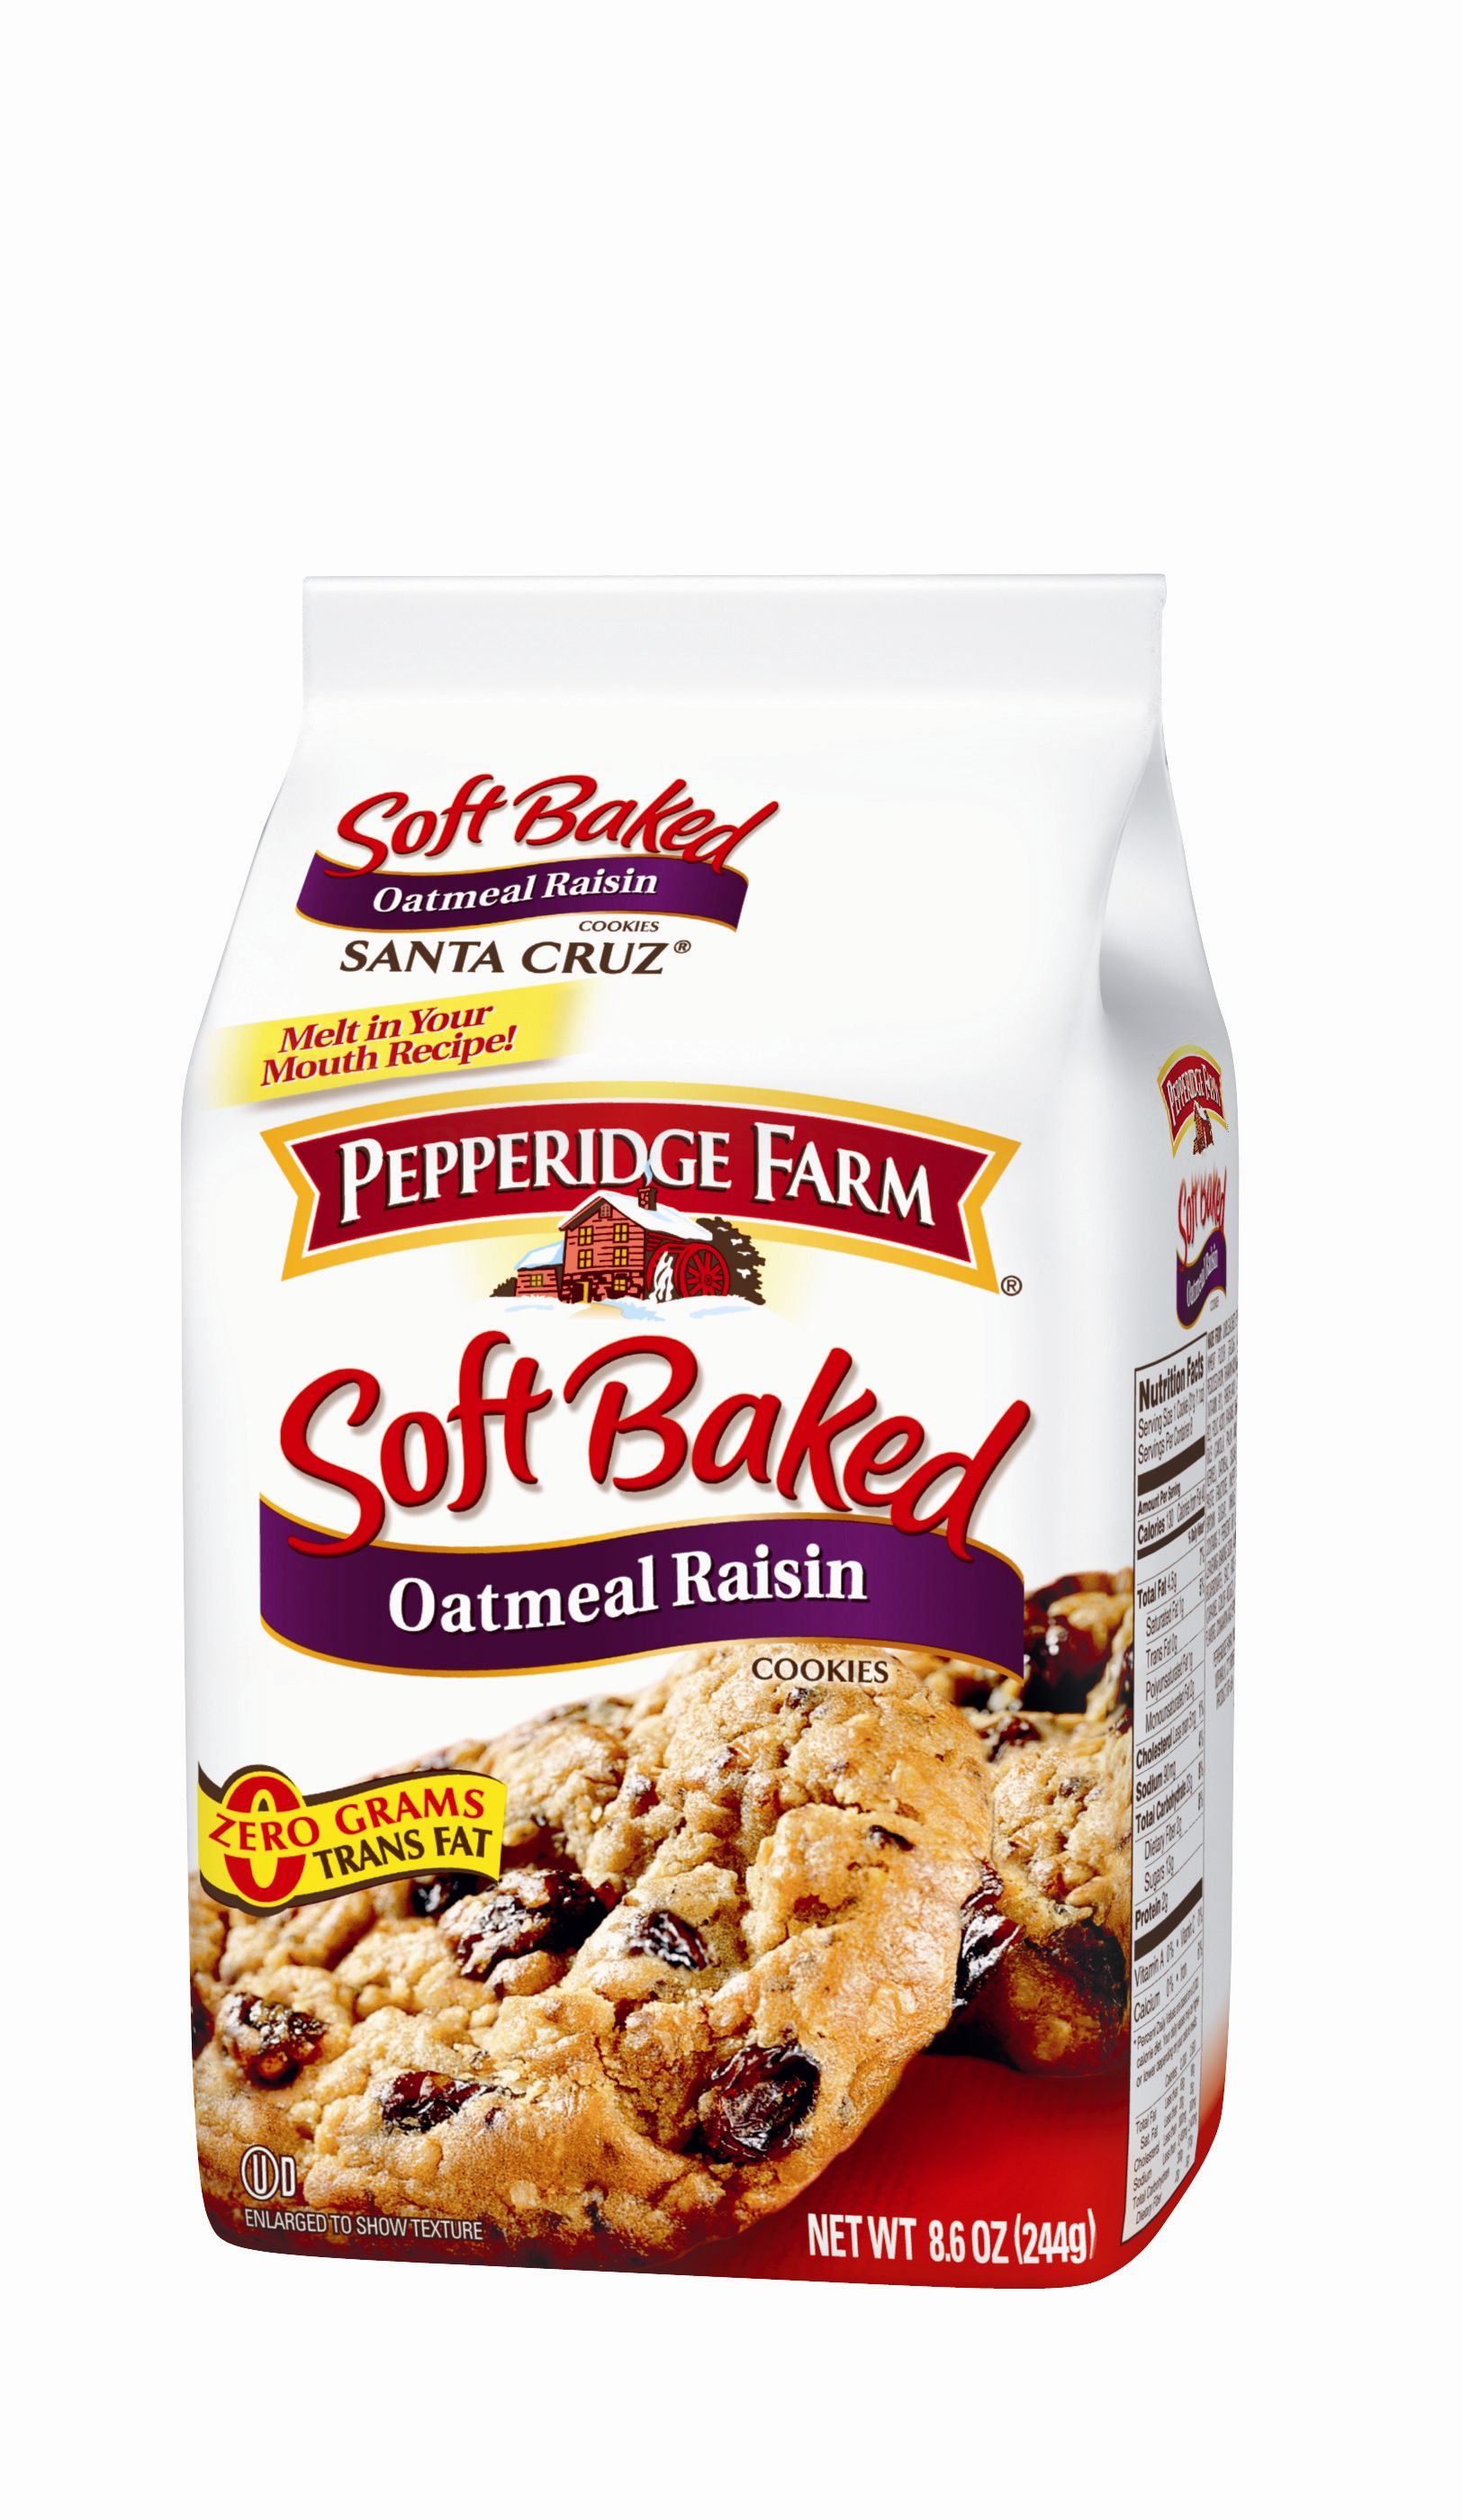 Oatmeal and raisin soft baked